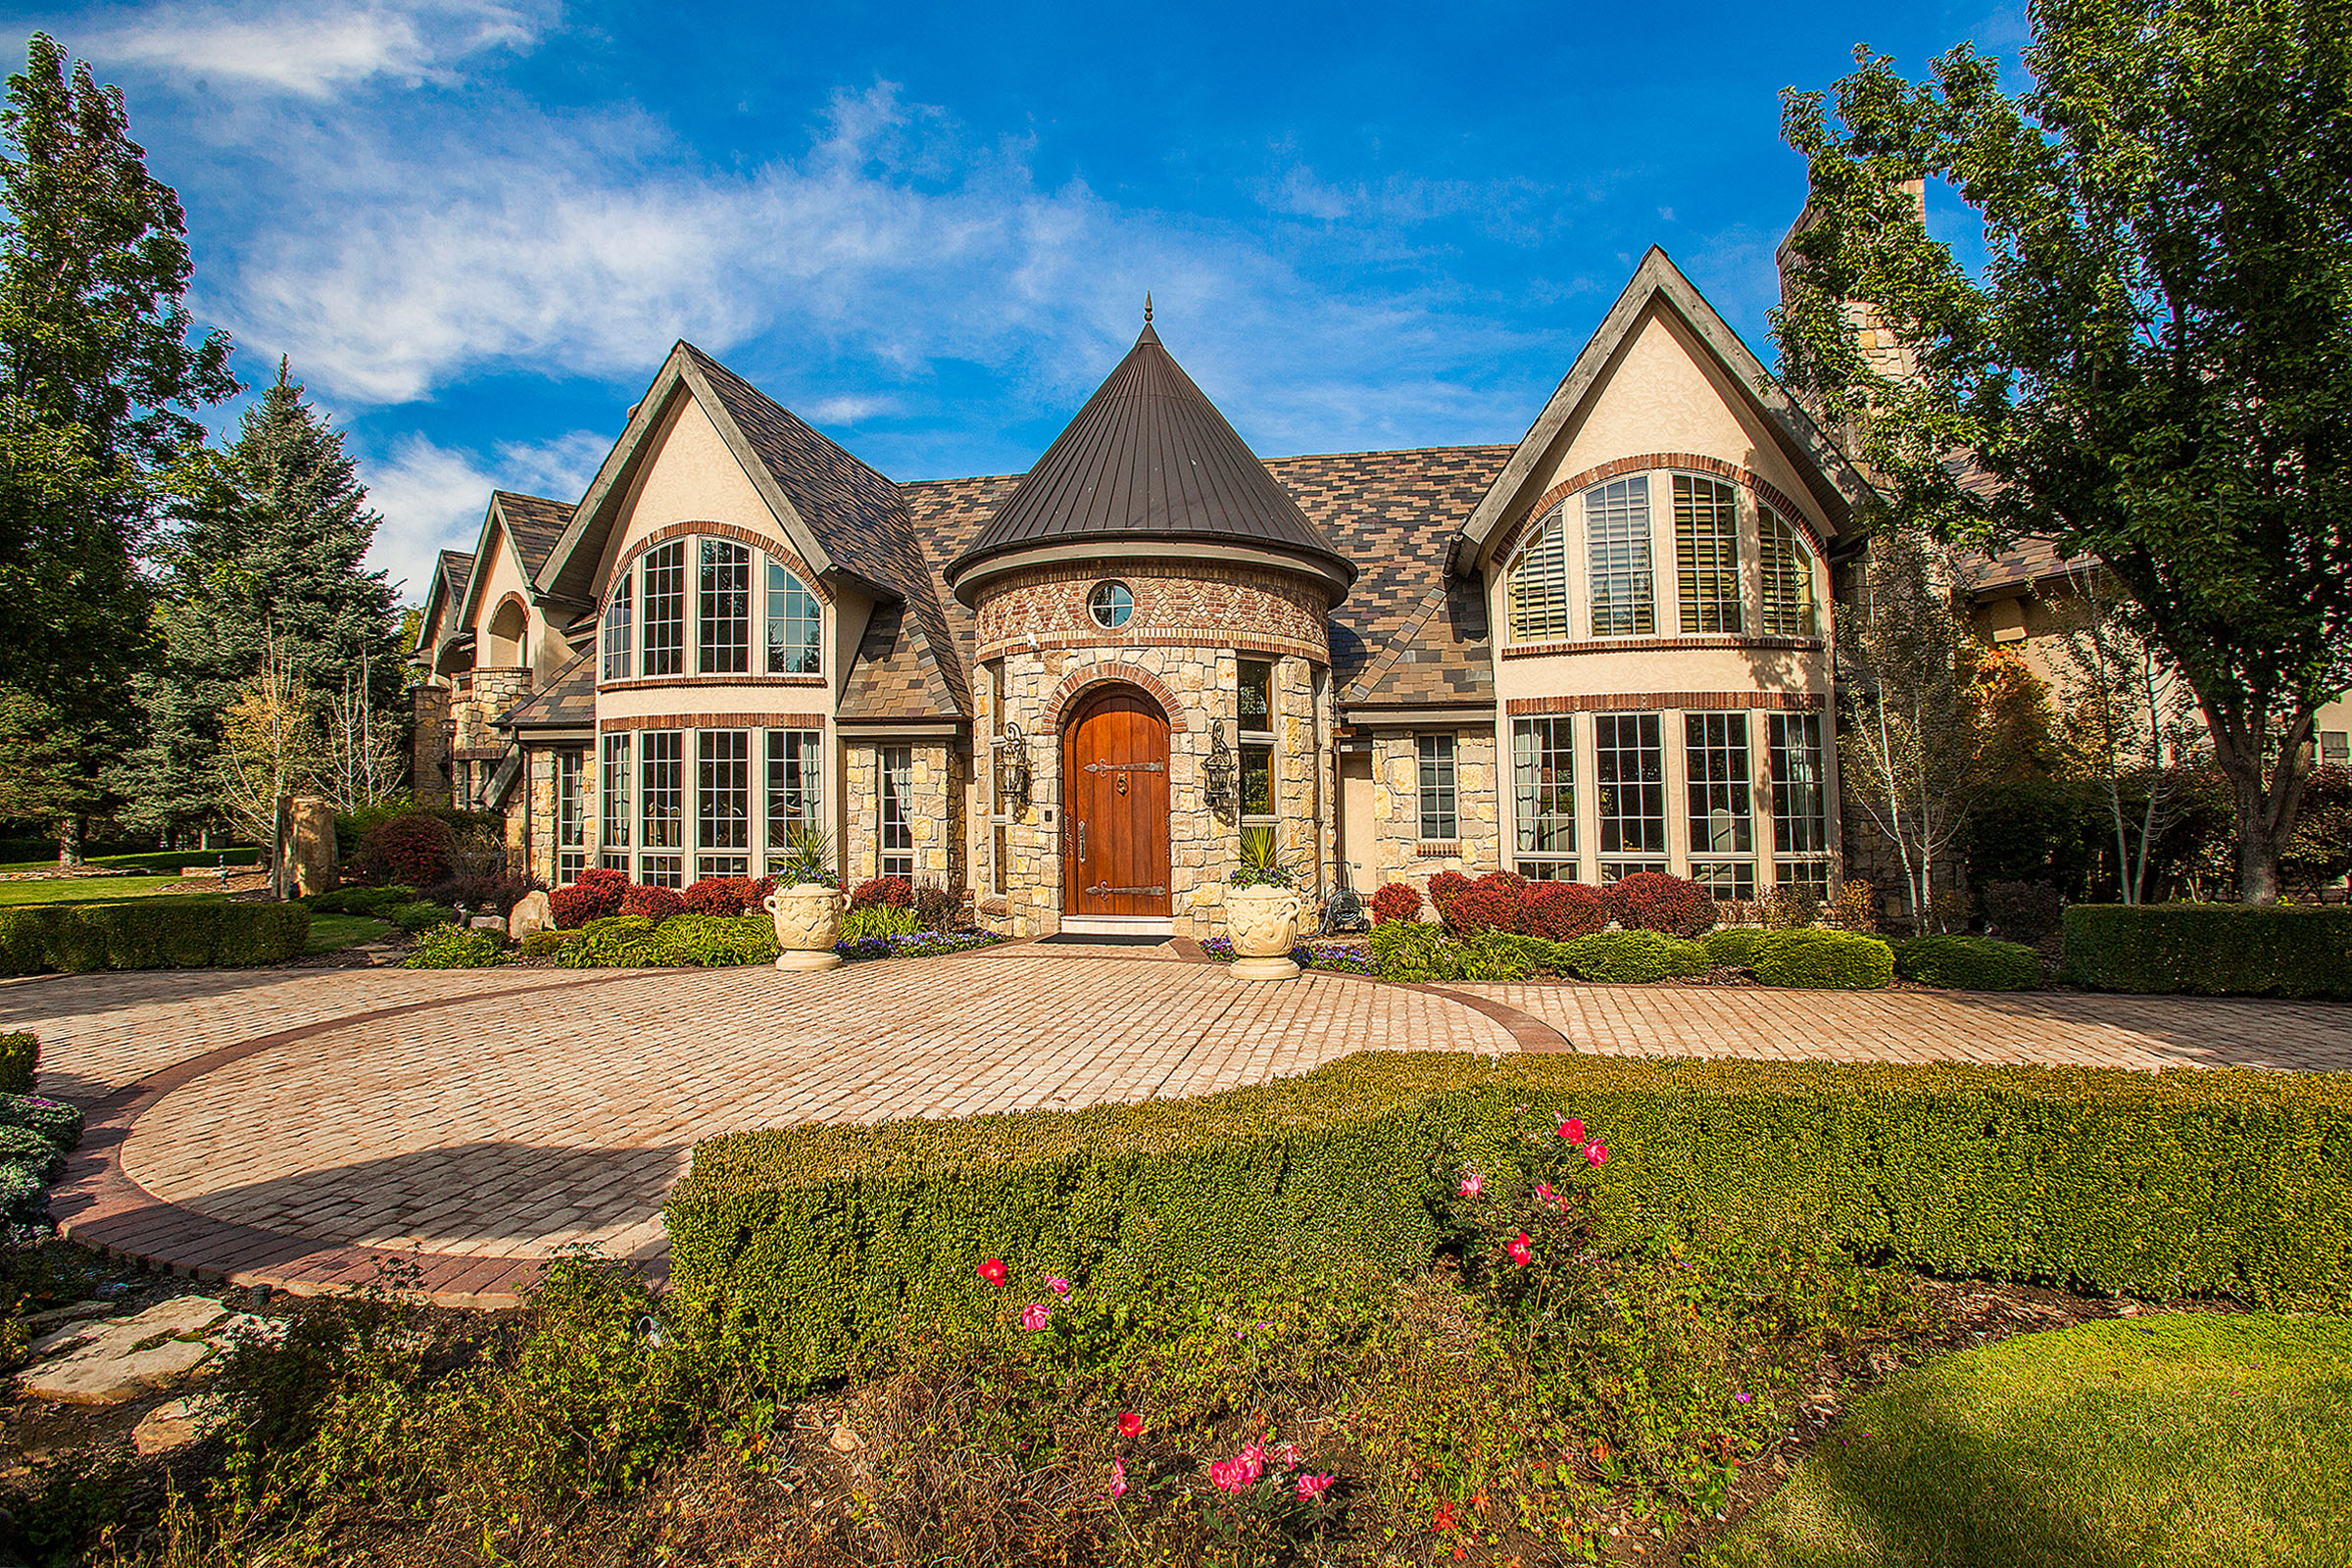 Pictured: 5 Mockingbird Lane, Cherry Hills Village, CO. Listed by LIV Sotheby's International Realty for $4,995,000